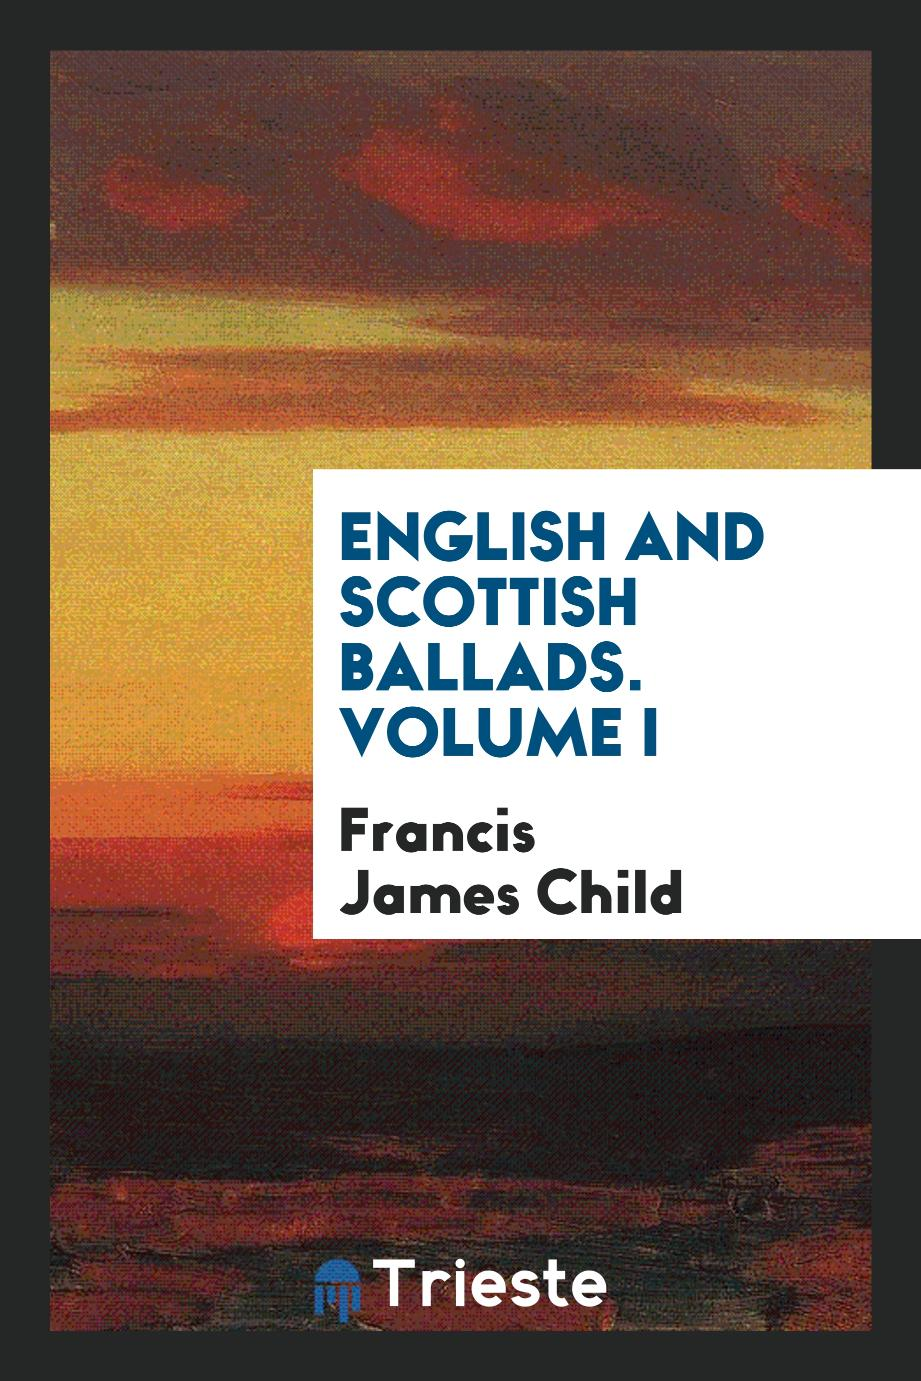 English and Scottish Ballads. Volume I